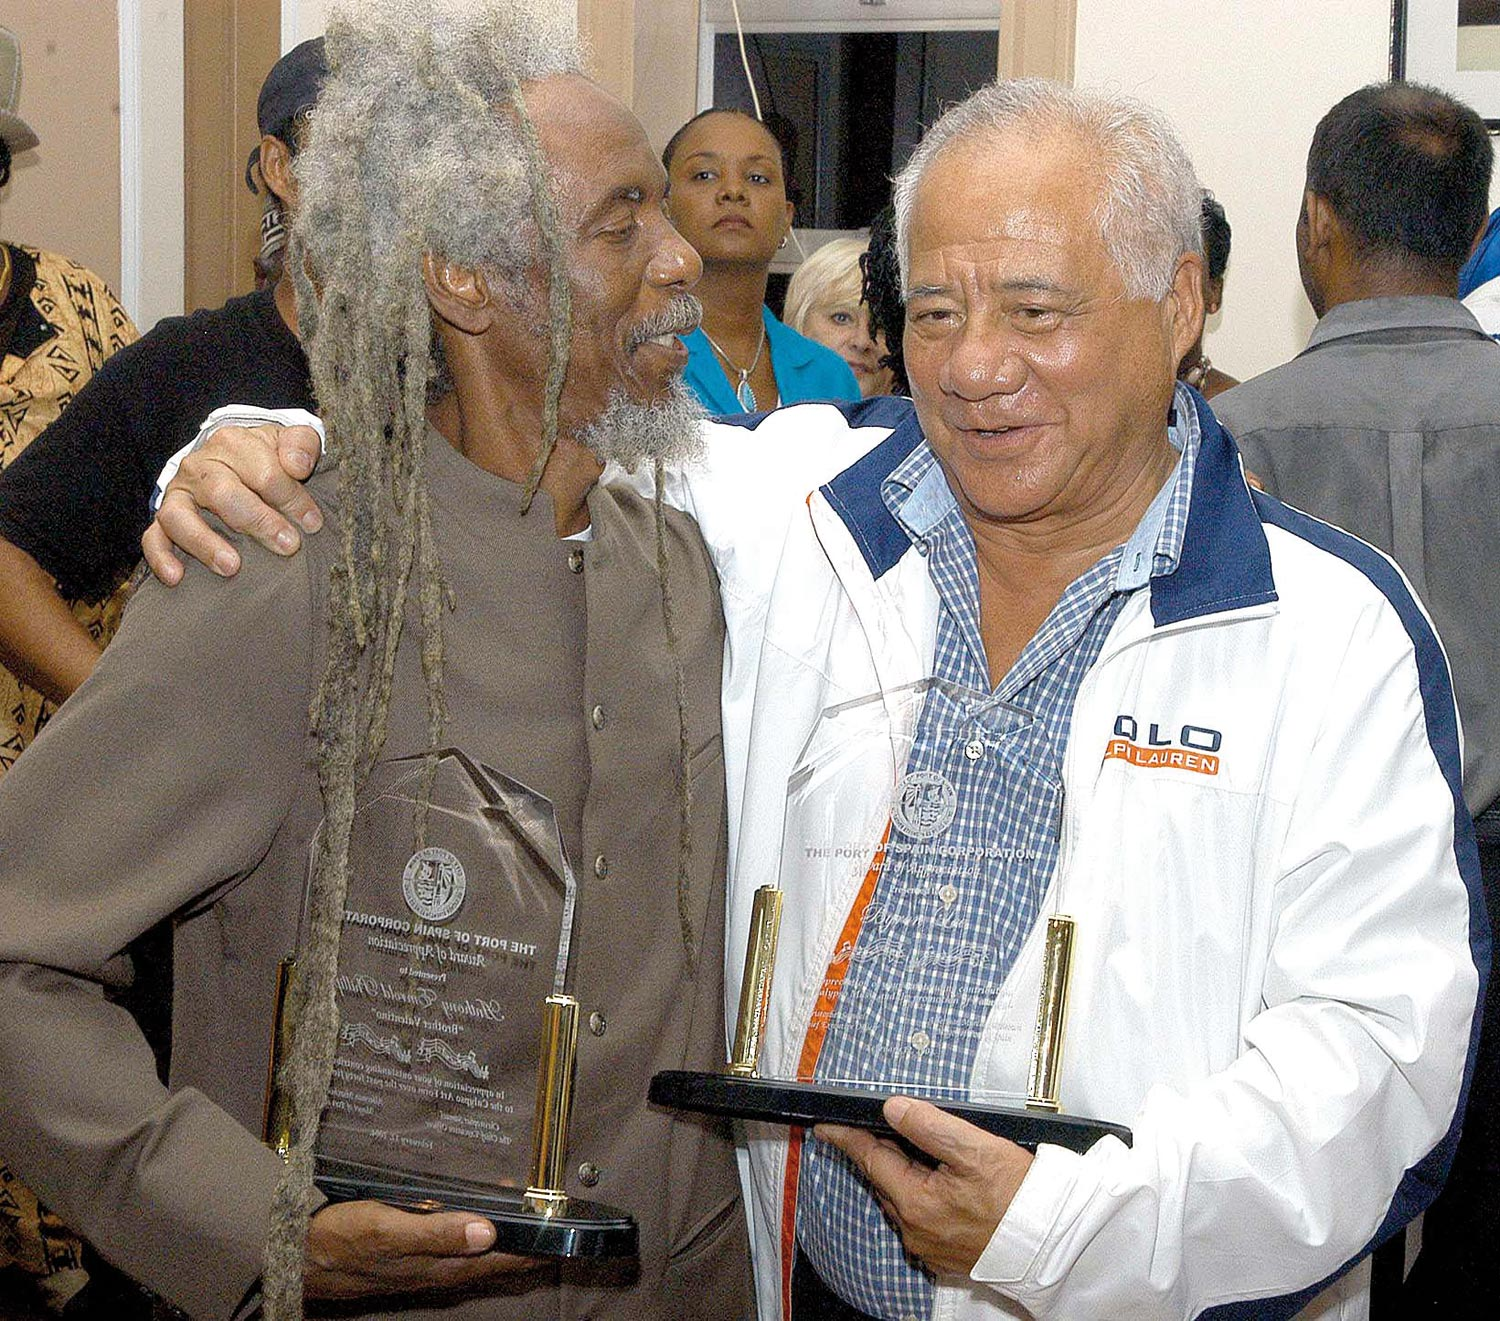 Caribbean icons in the entertainment industry calypsonian Brother Valentino (left) and Byron Lee with the awards they received from the mayor of Port of Spain, Trinidad. Photograph by Iossjr